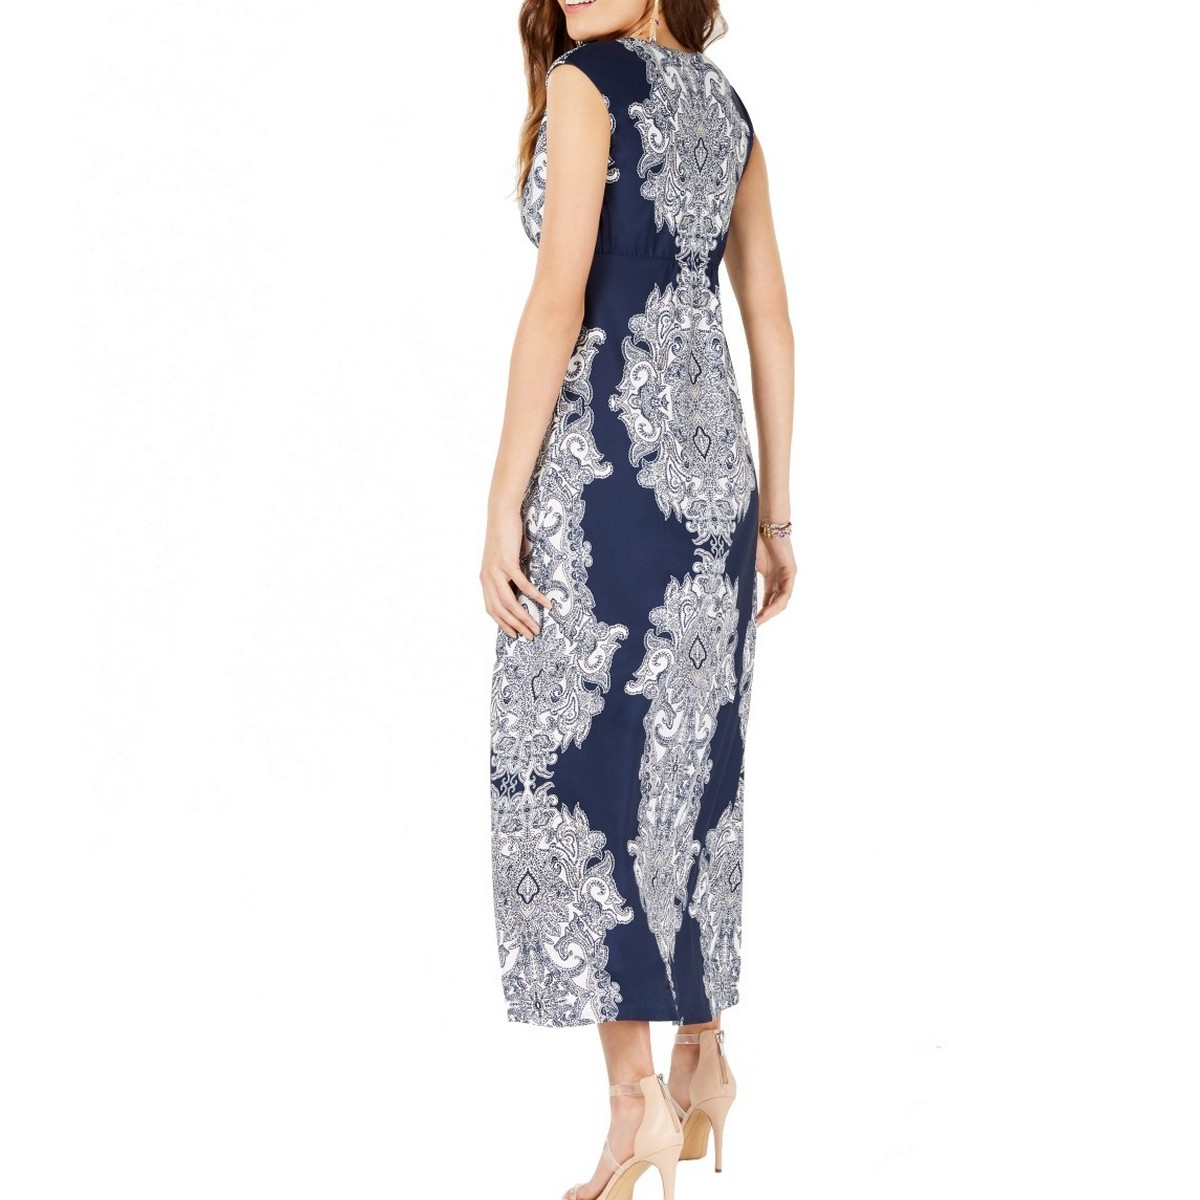 INC-NEW-Women-039-s-Scroll-print-Surplice-Cap-sleeve-Maxi-Dress-TEDO thumbnail 4